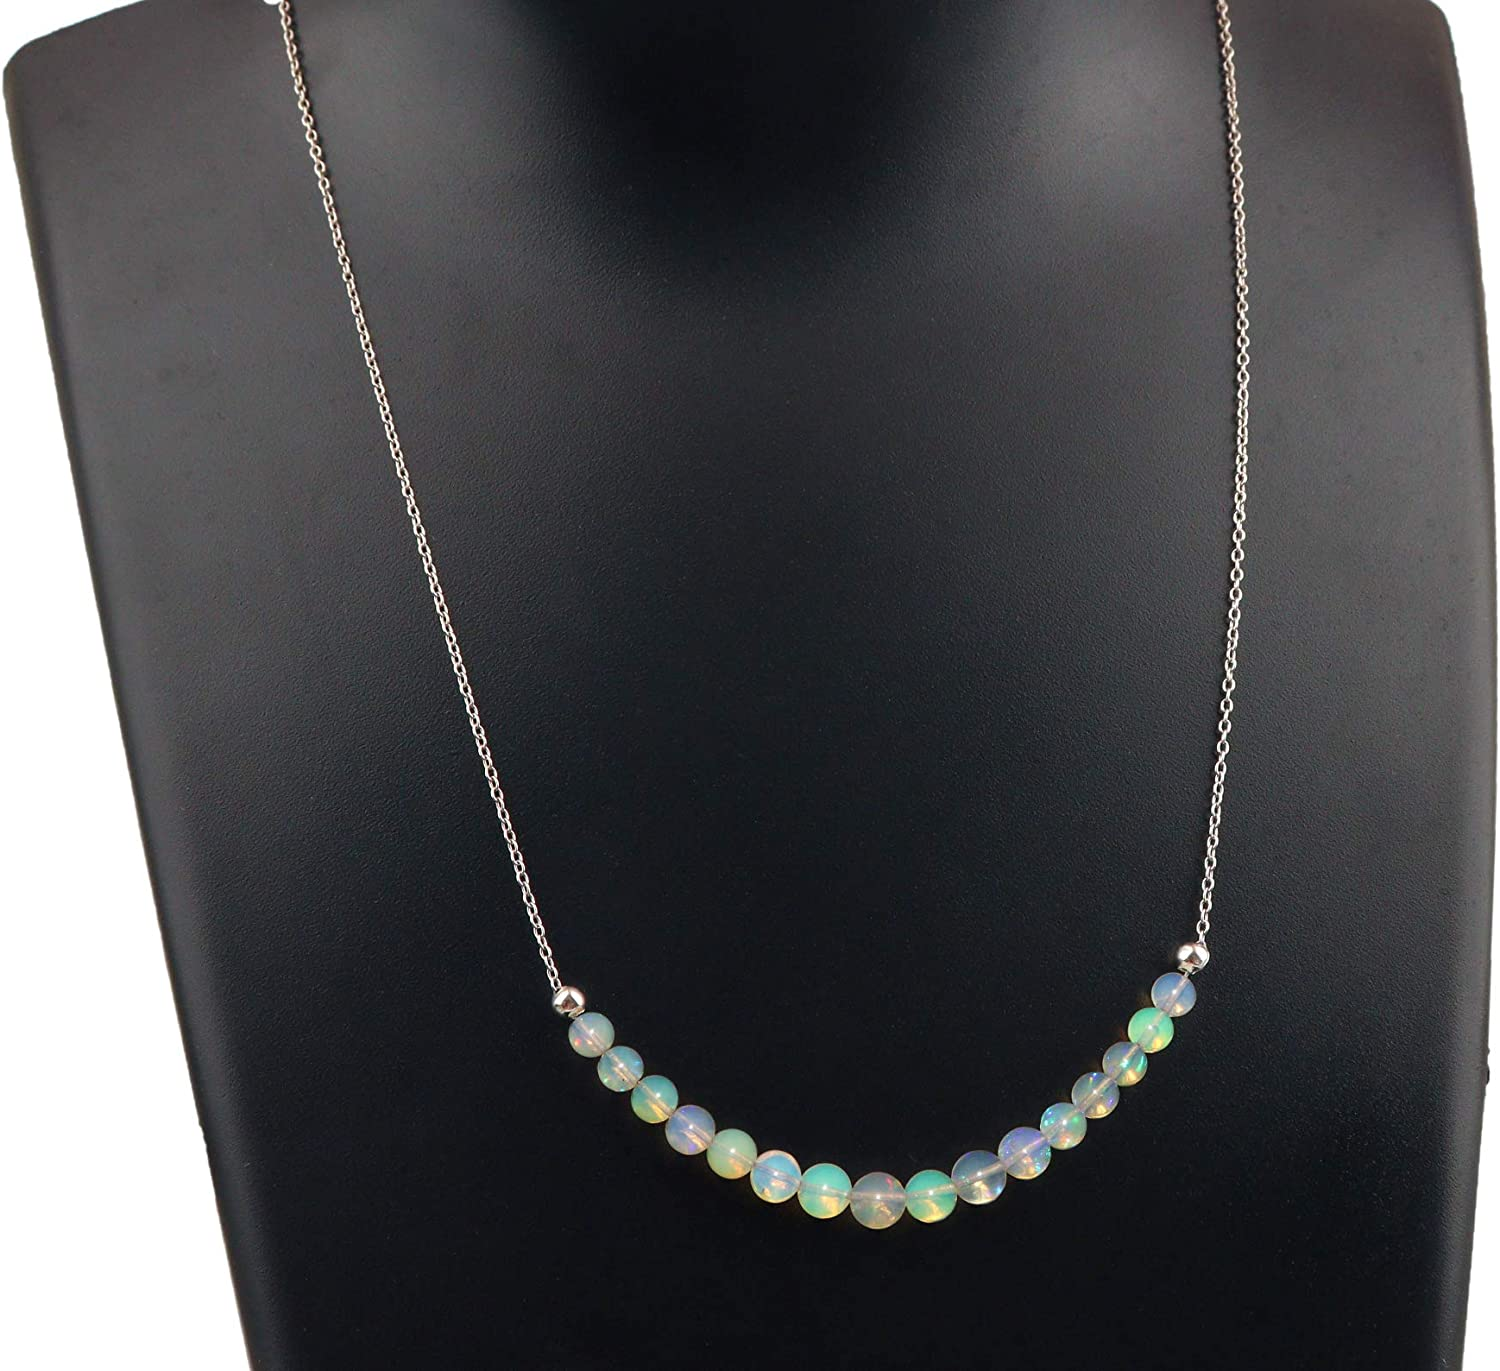 Black Ethiopian Opal lariat necklace Graduation gift October birthstone gifts gold filled chain and Black Opal beads Modern Y necklace